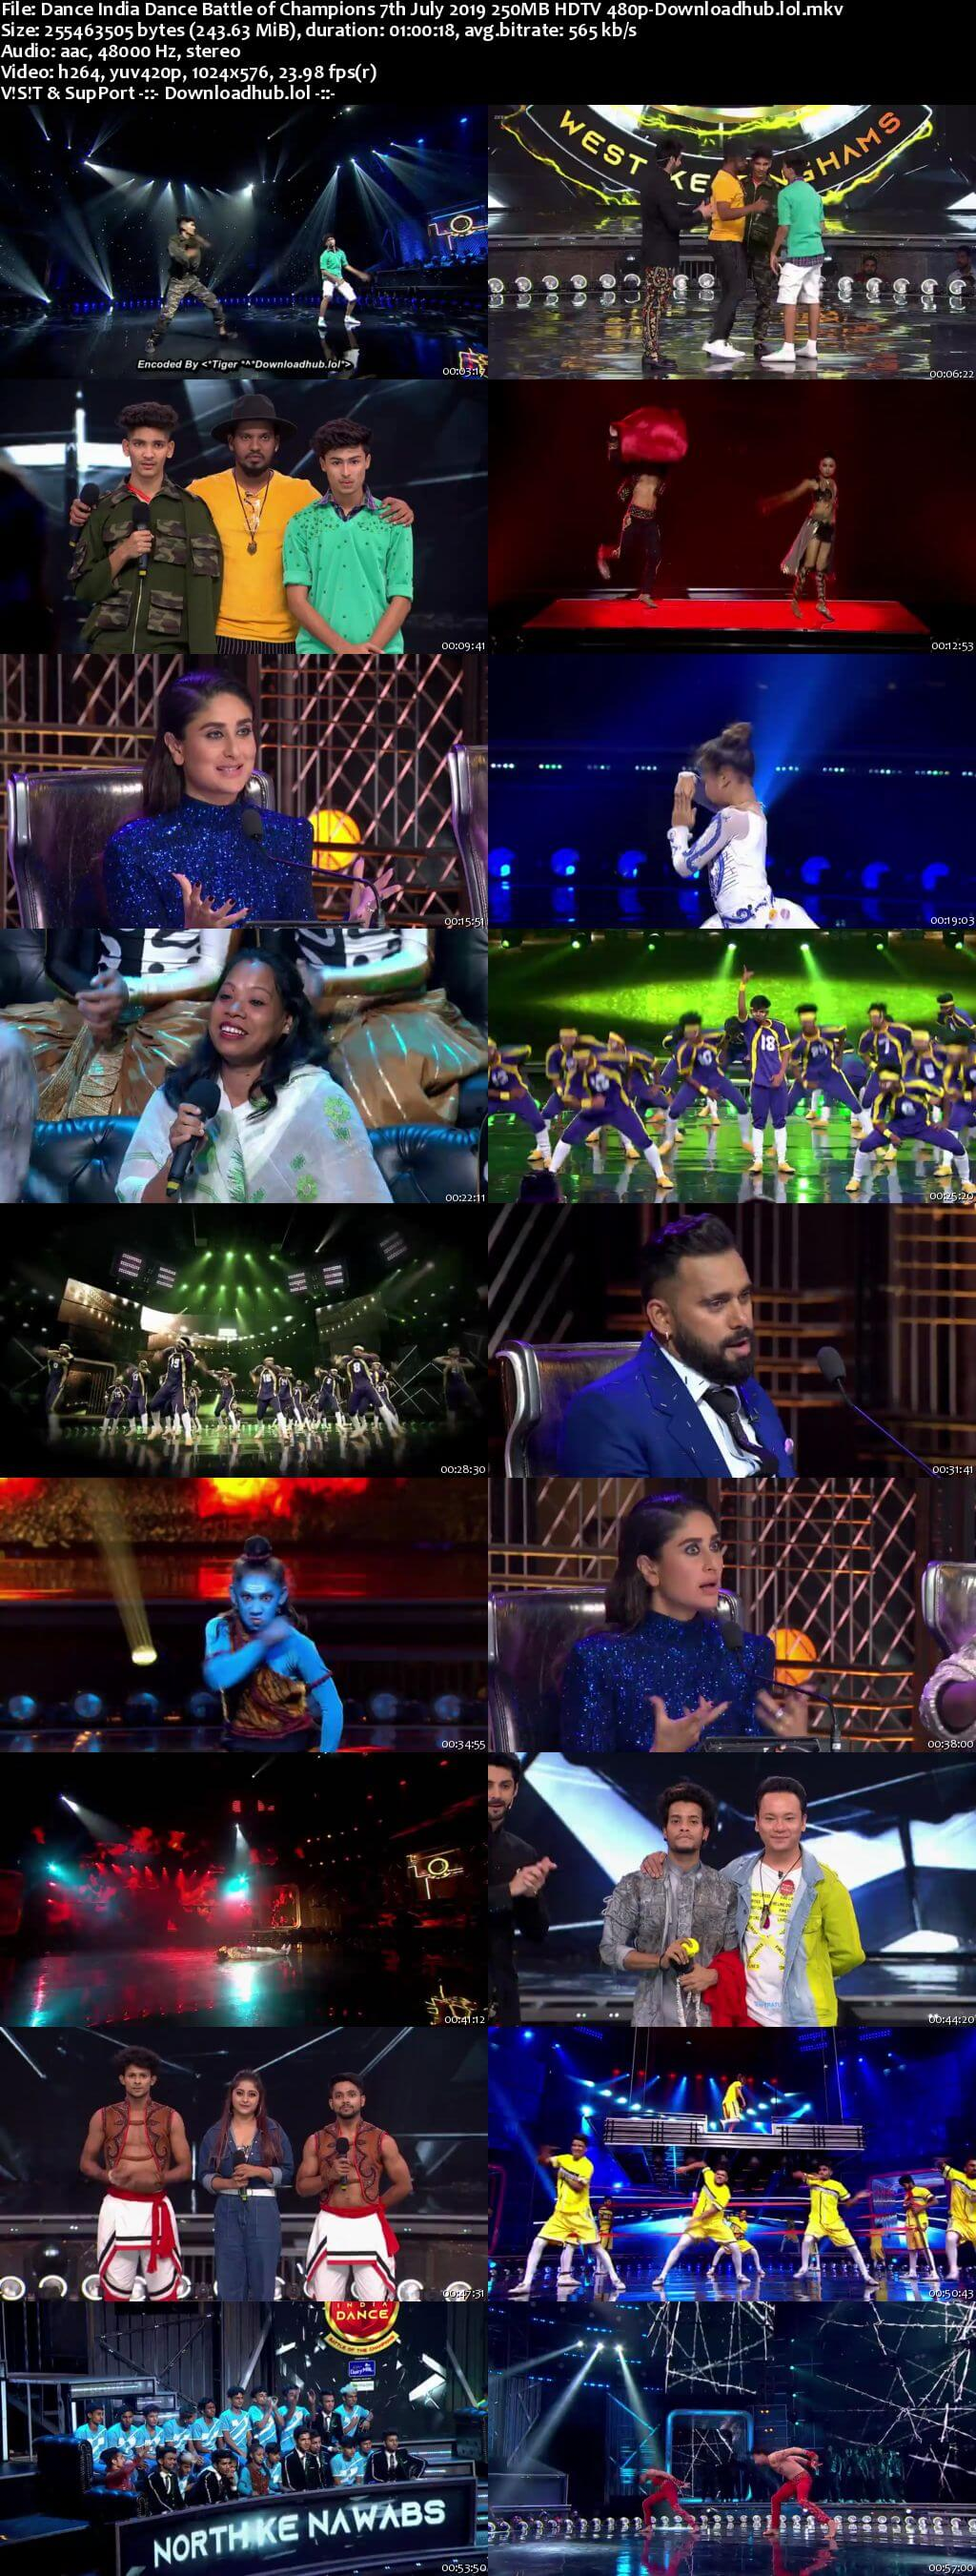 Dance India Dance Battle of Champions 7th July 2019 Download